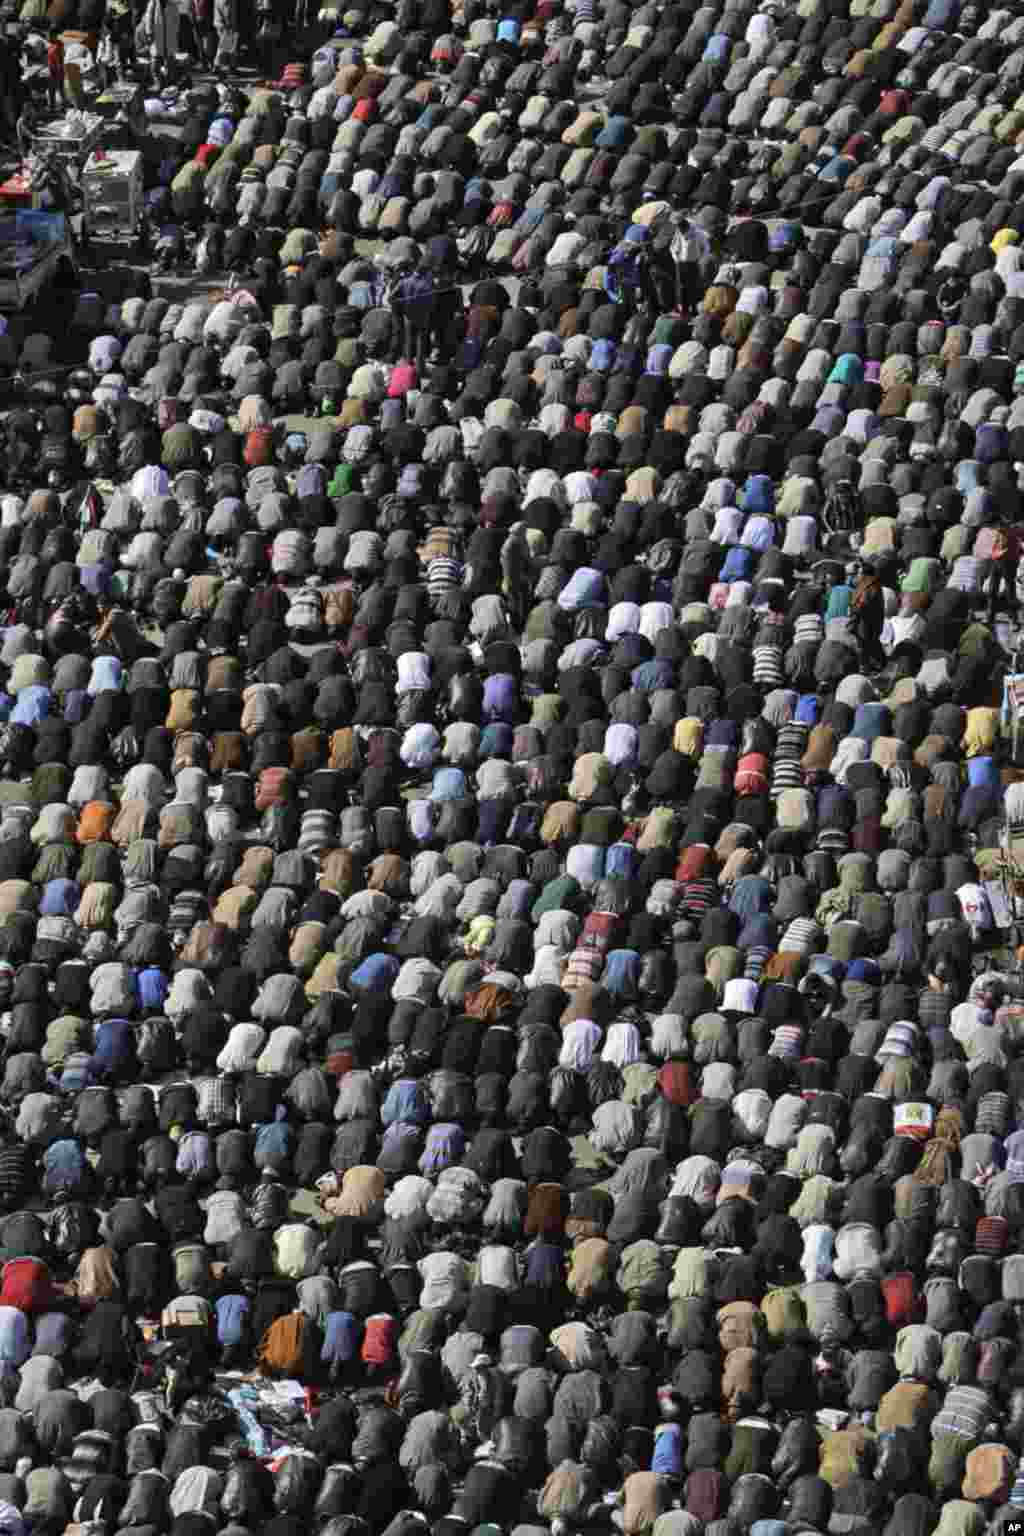 Egyptian protesters attend Friday prayers during a rally in Tahrir Square, in Cairo, Egypt. January 27, 2012. (AP)